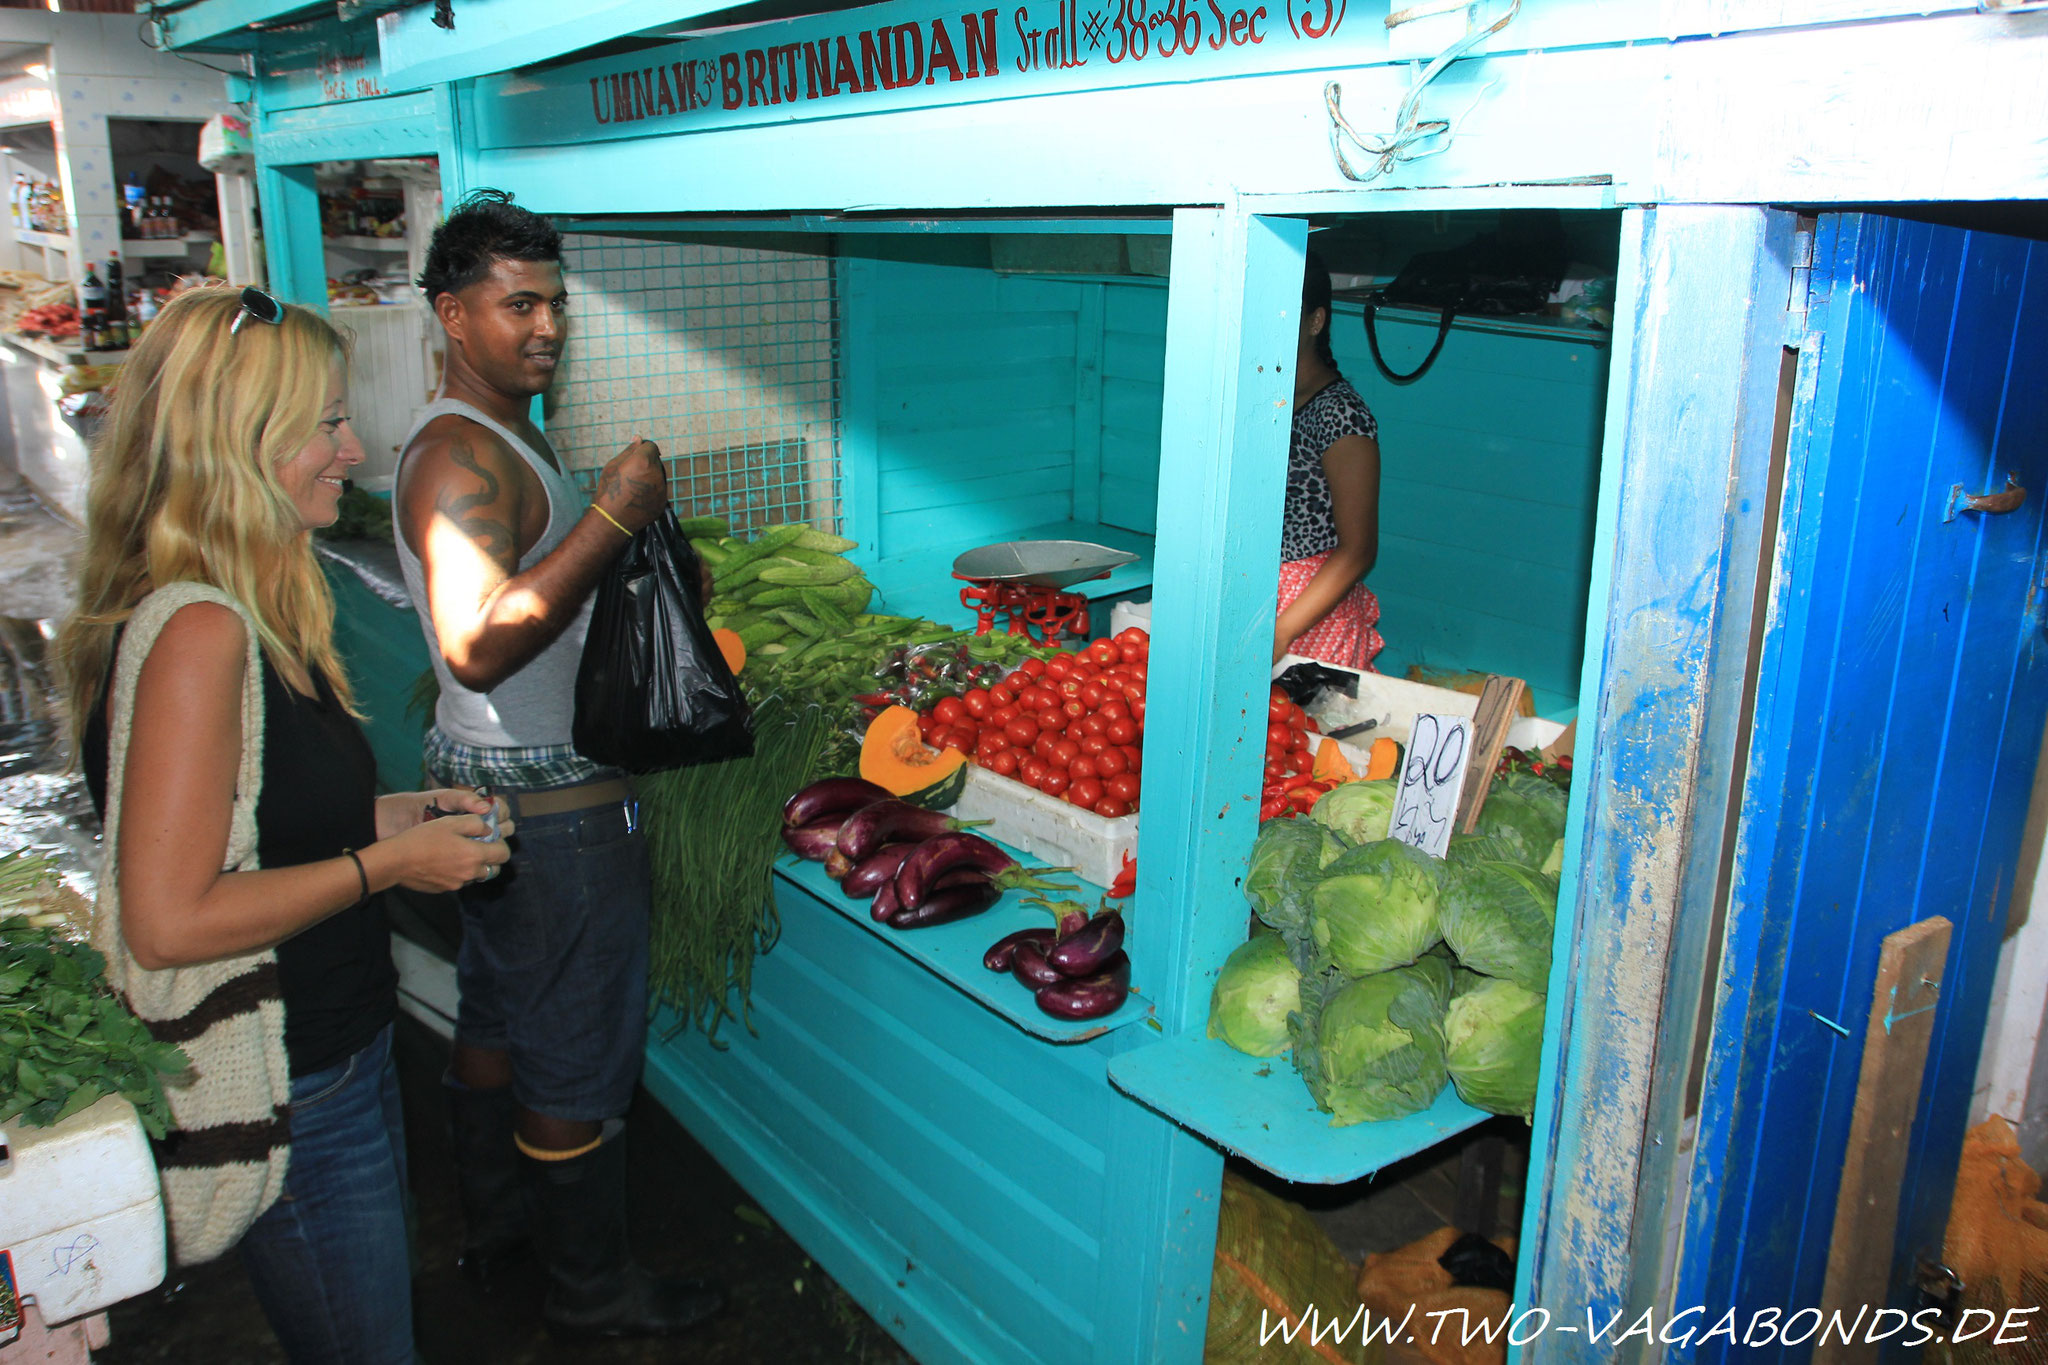 GUYANA 2014 - STABROEK MARKET IN GEORGETOWN